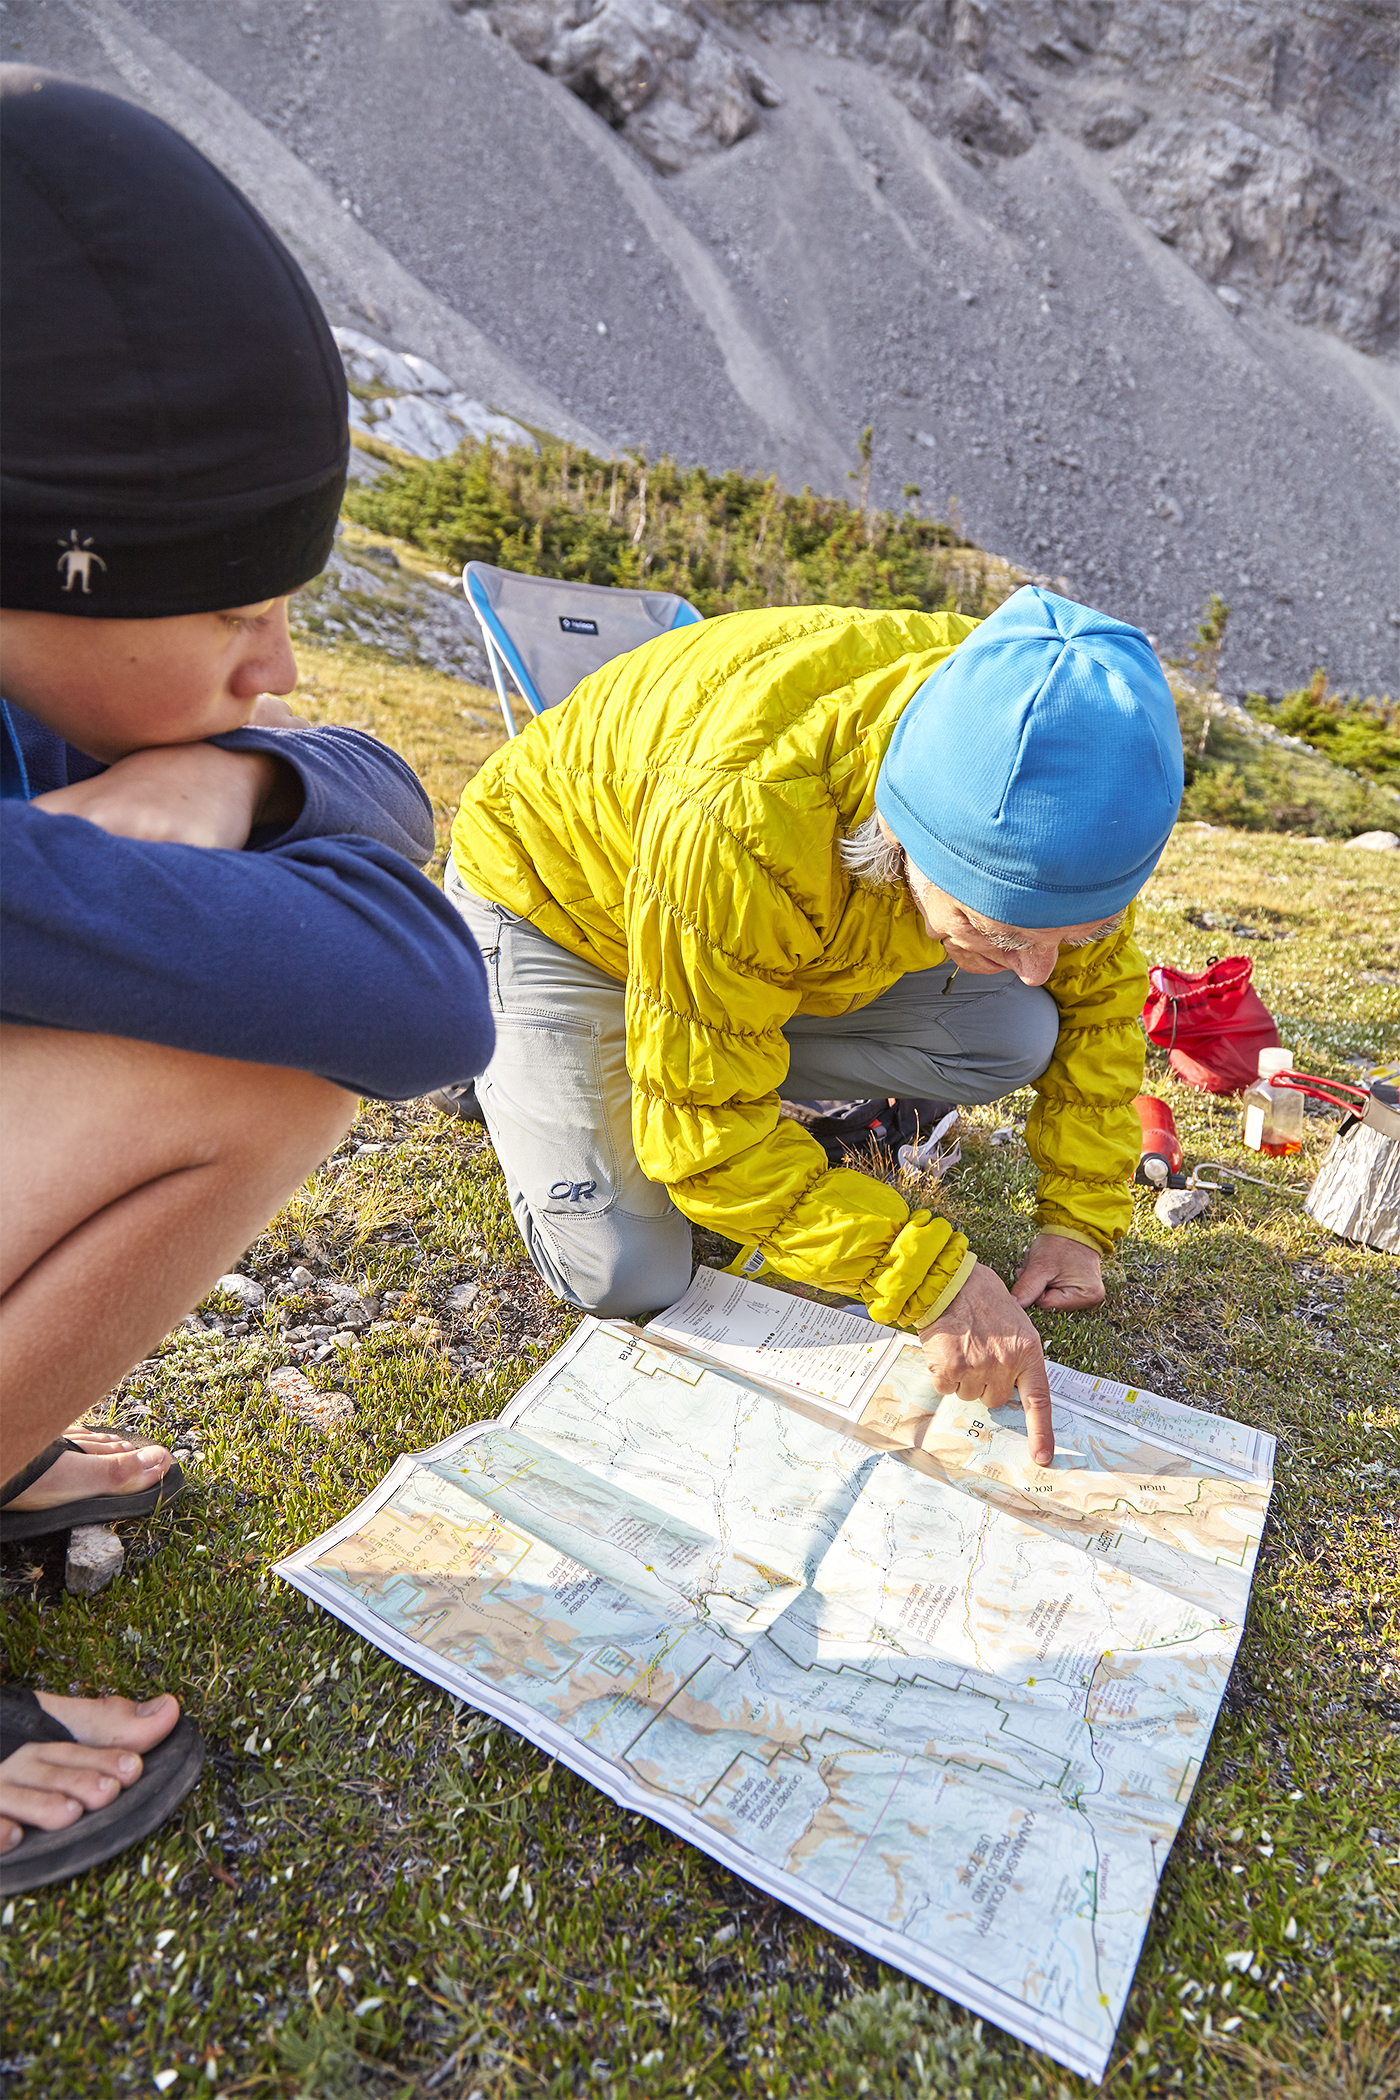 Yuri and Milan planning which mountain to scramble from our campsite.